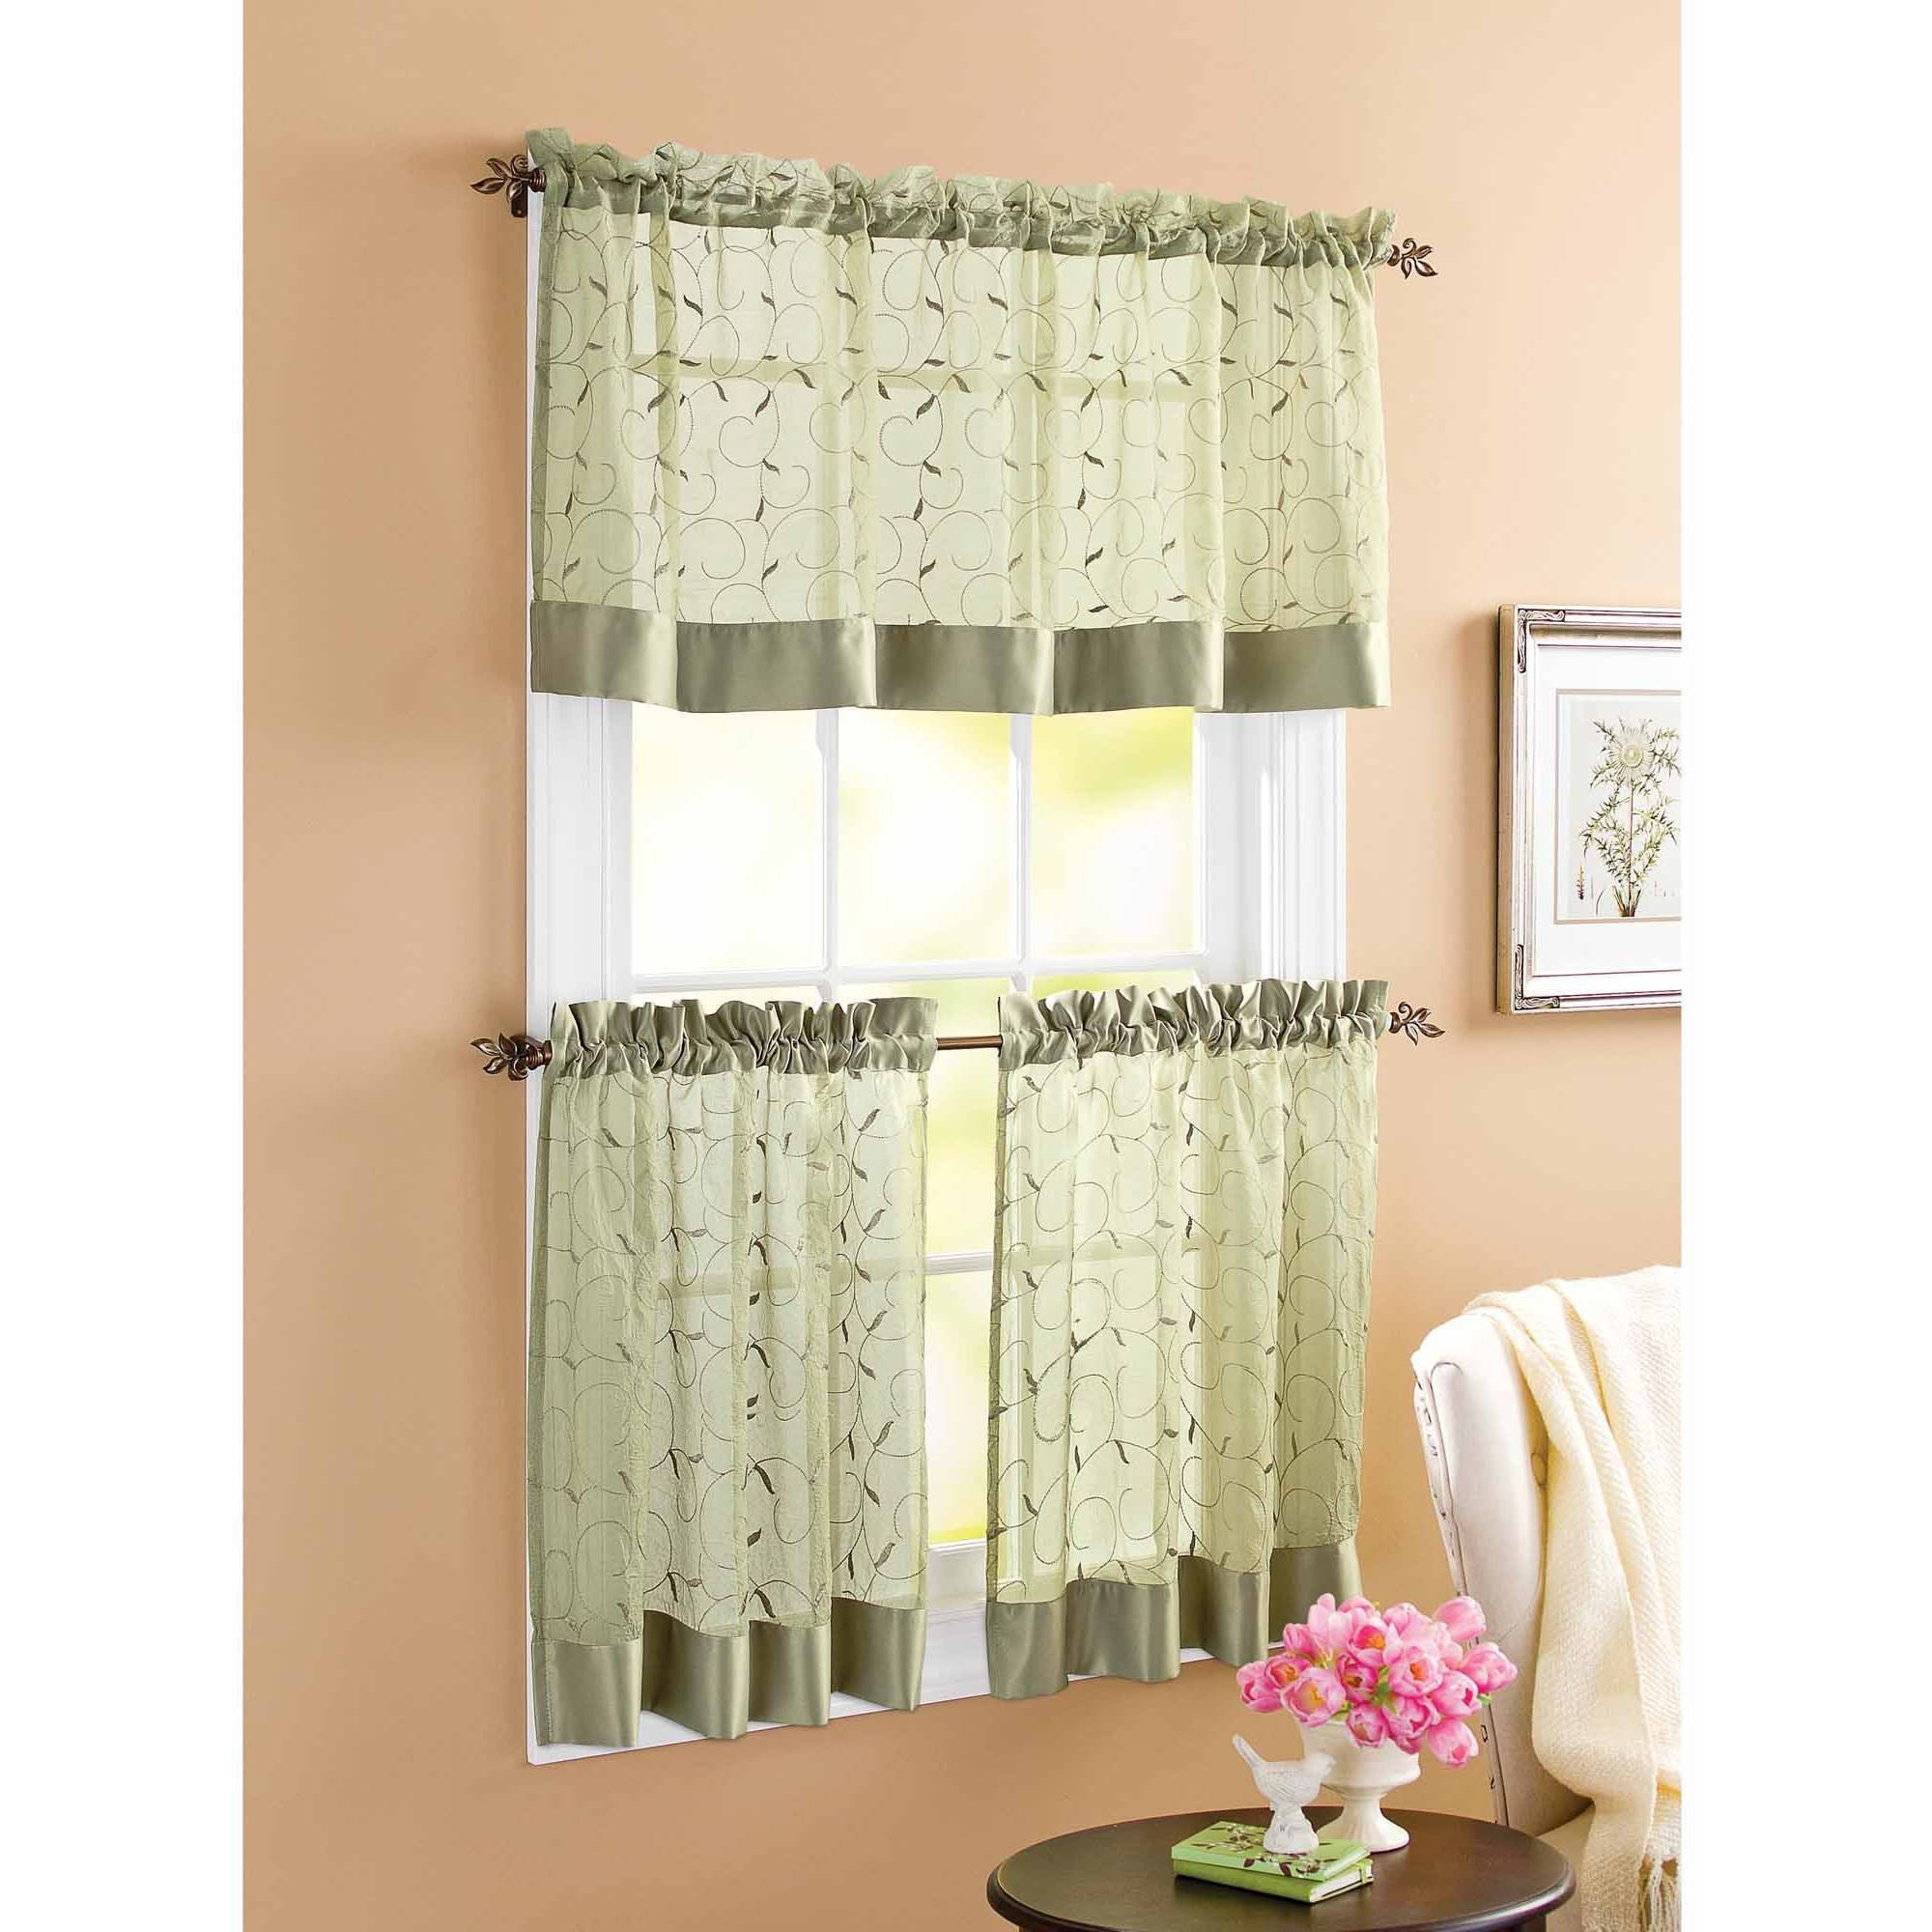 Kitchen Curtains Walmart With Regard To Sage Green Kitchen Curtains (Image 16 of 25)